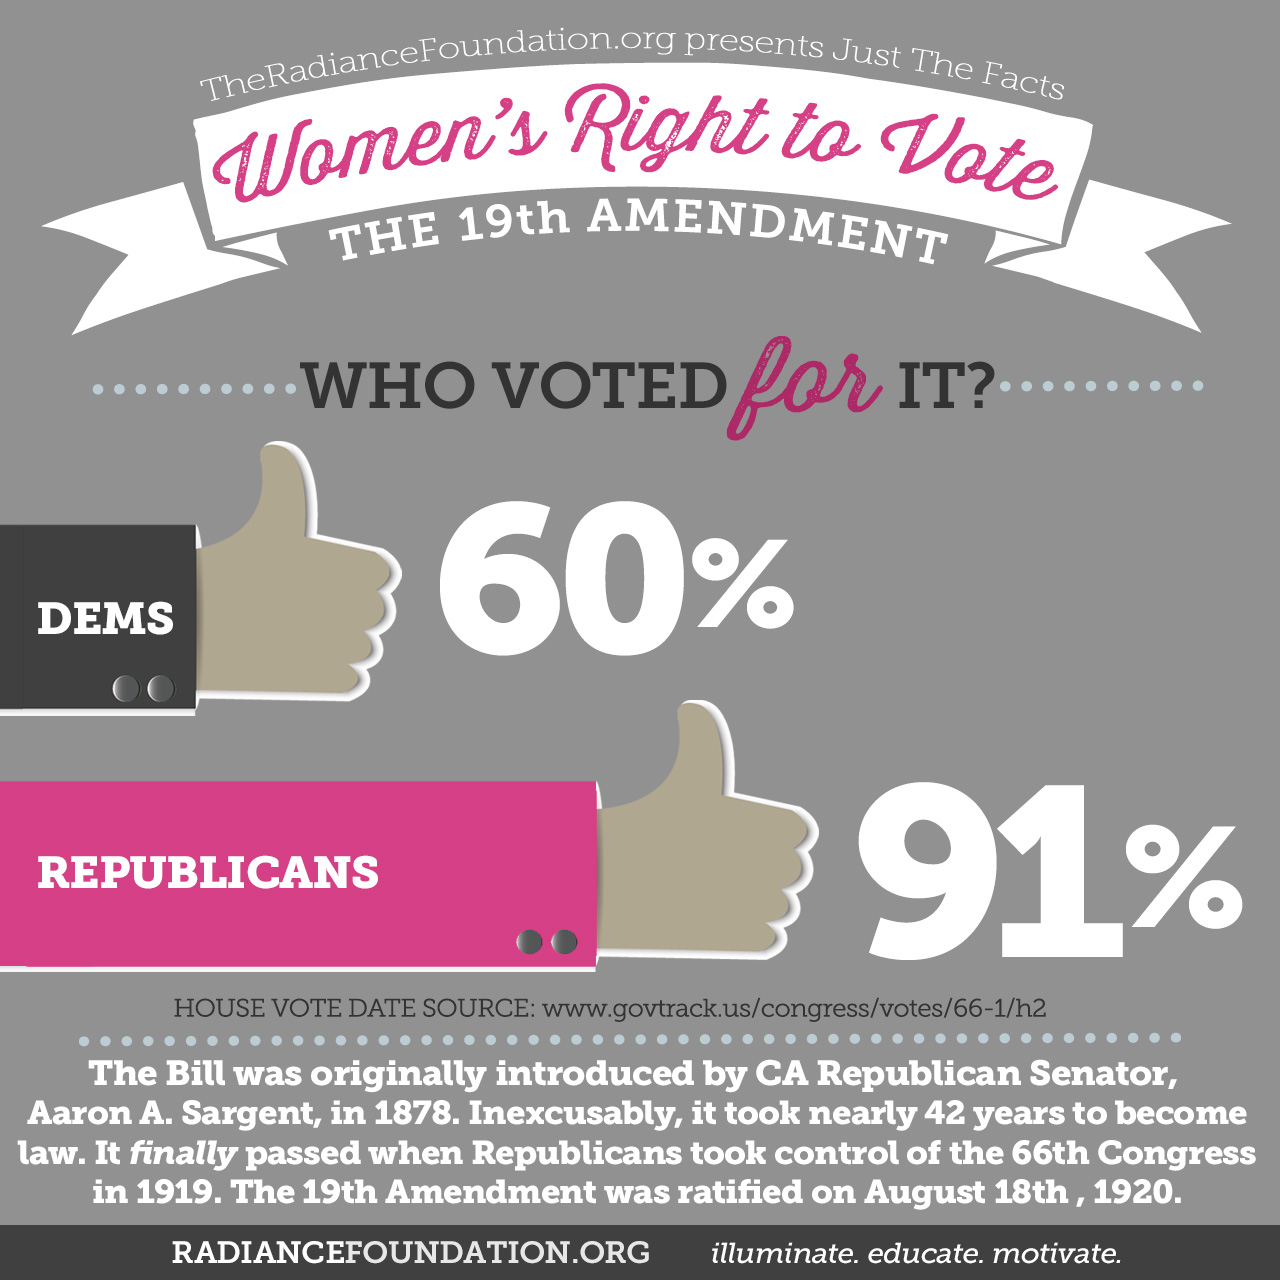 """Women's Right to Vote"" by The Radiance Foundation"